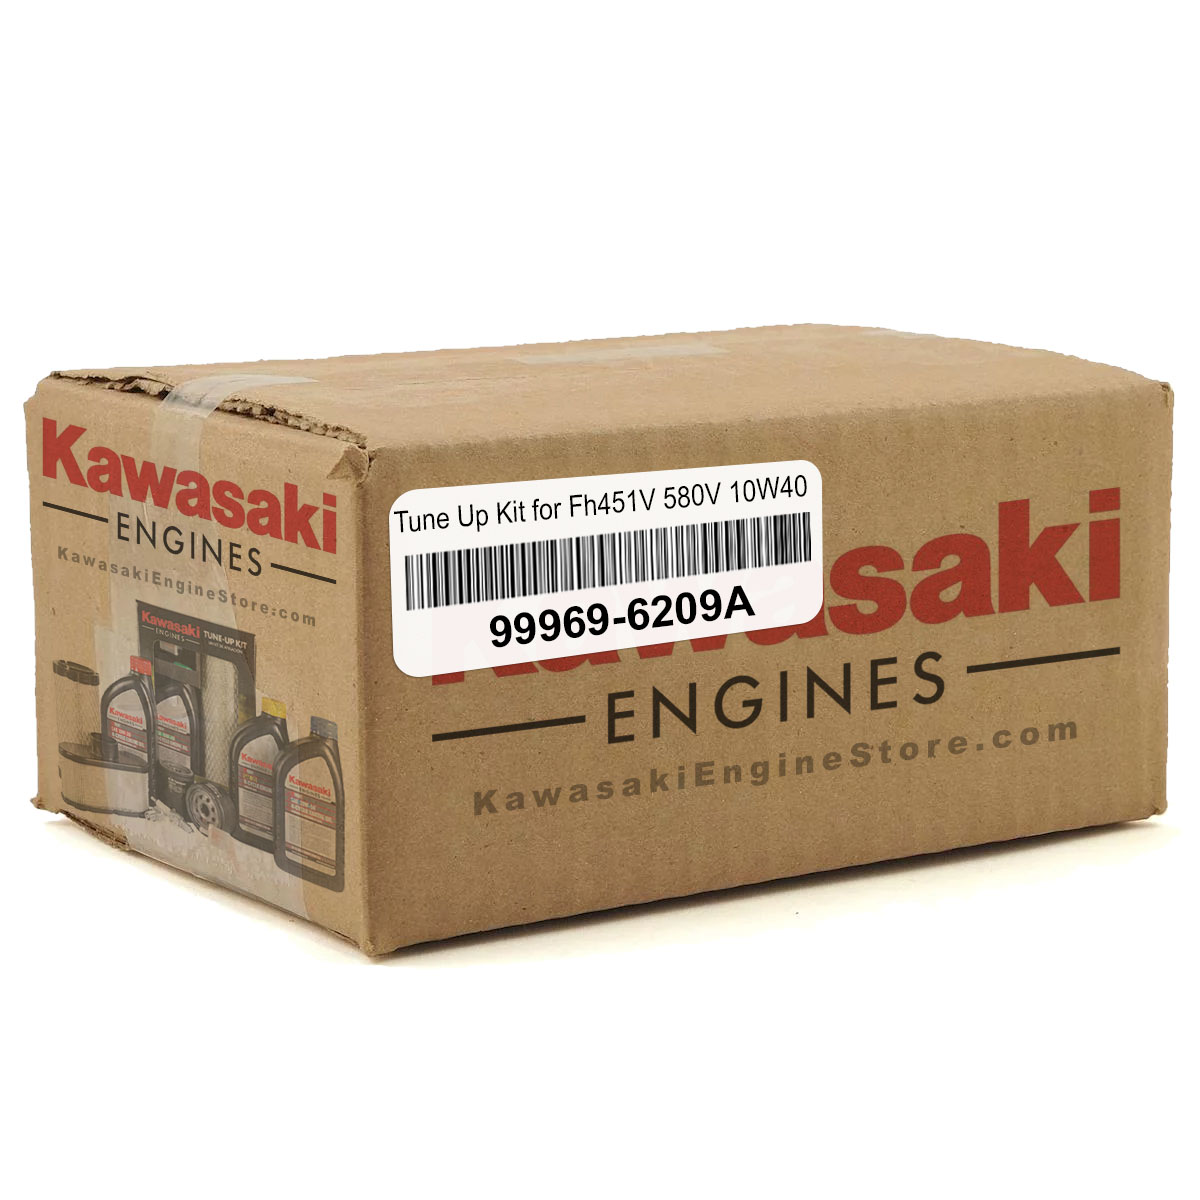 Kawasaki 99969-6209A Tune Up Kit for Fh451V 580V 10W40